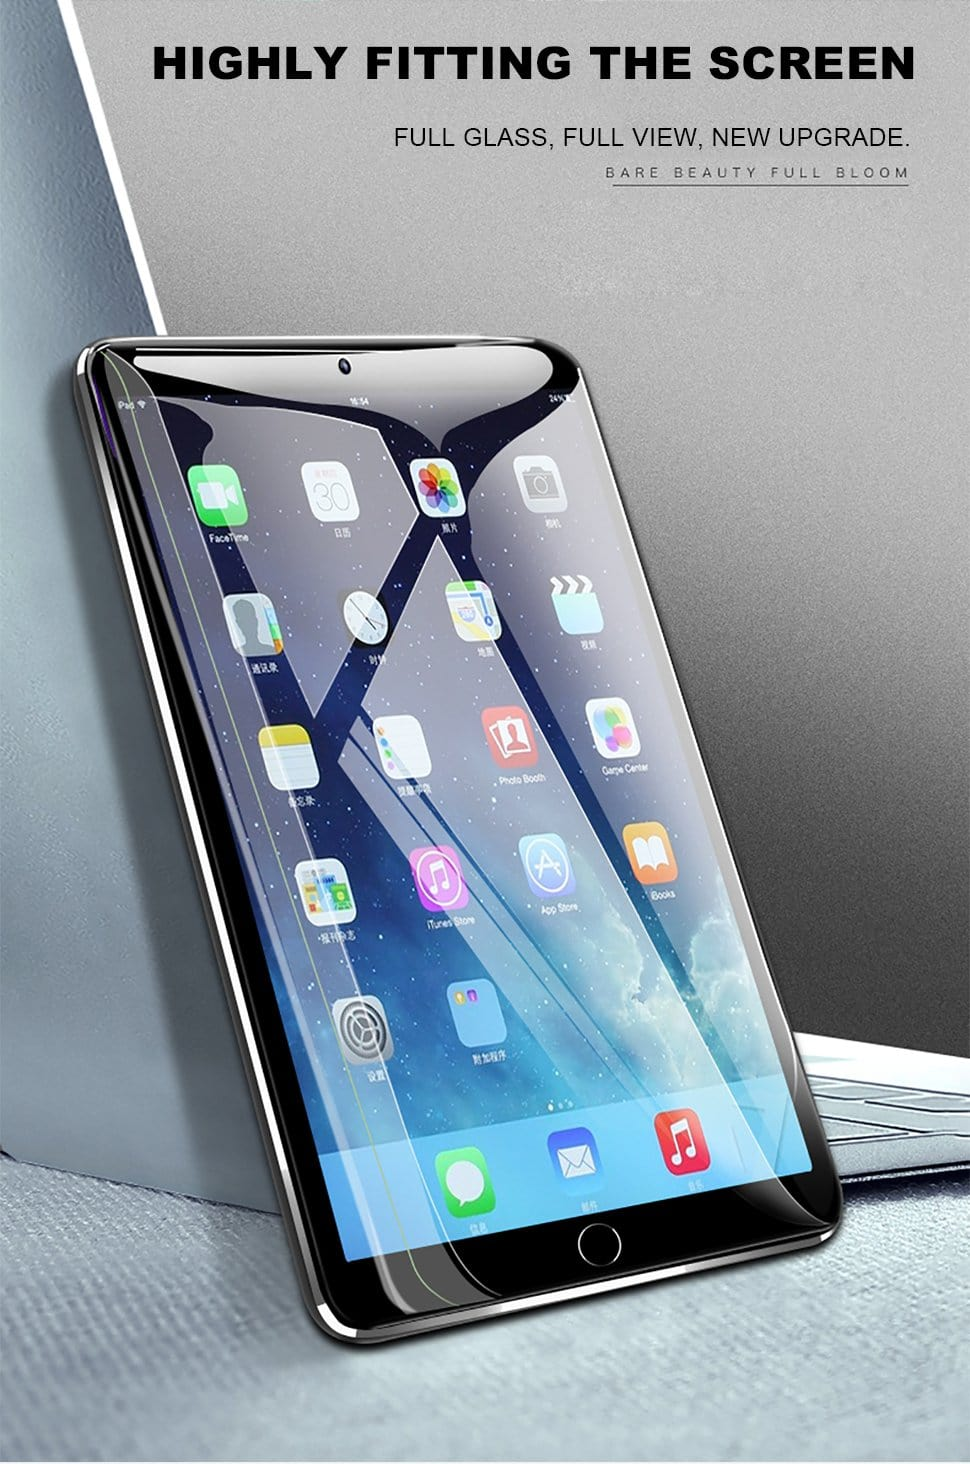 10D Full Cover Tempered Glass Film For IPAD air(2/3)pro(2016/2017/2018/11inch)WITH LOCATOR